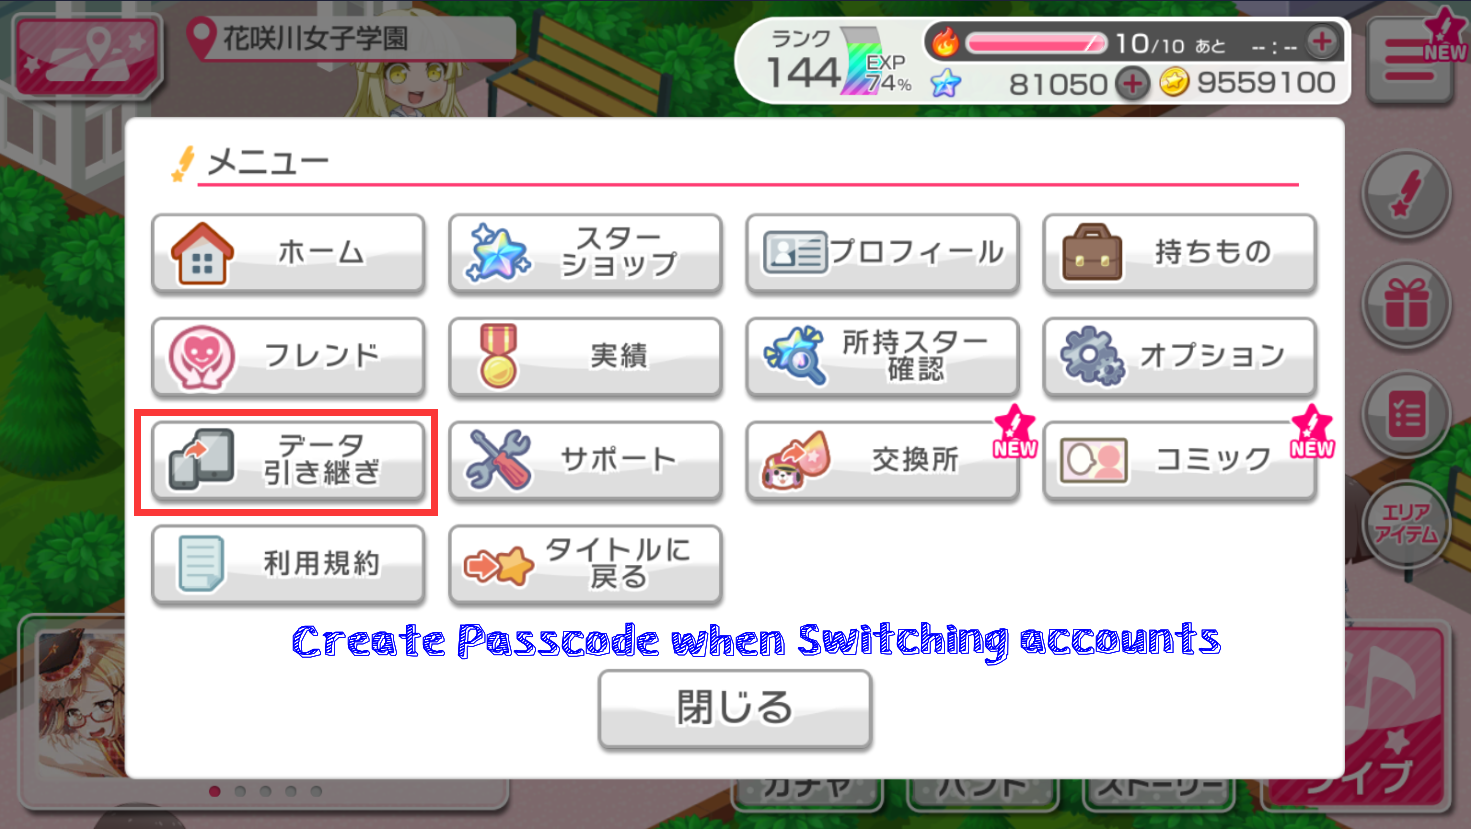 【JP】(GIFT FOR 2+)Rank 20 - 35,103000+ Gems, BanG Dream,Girls Band Party account 7